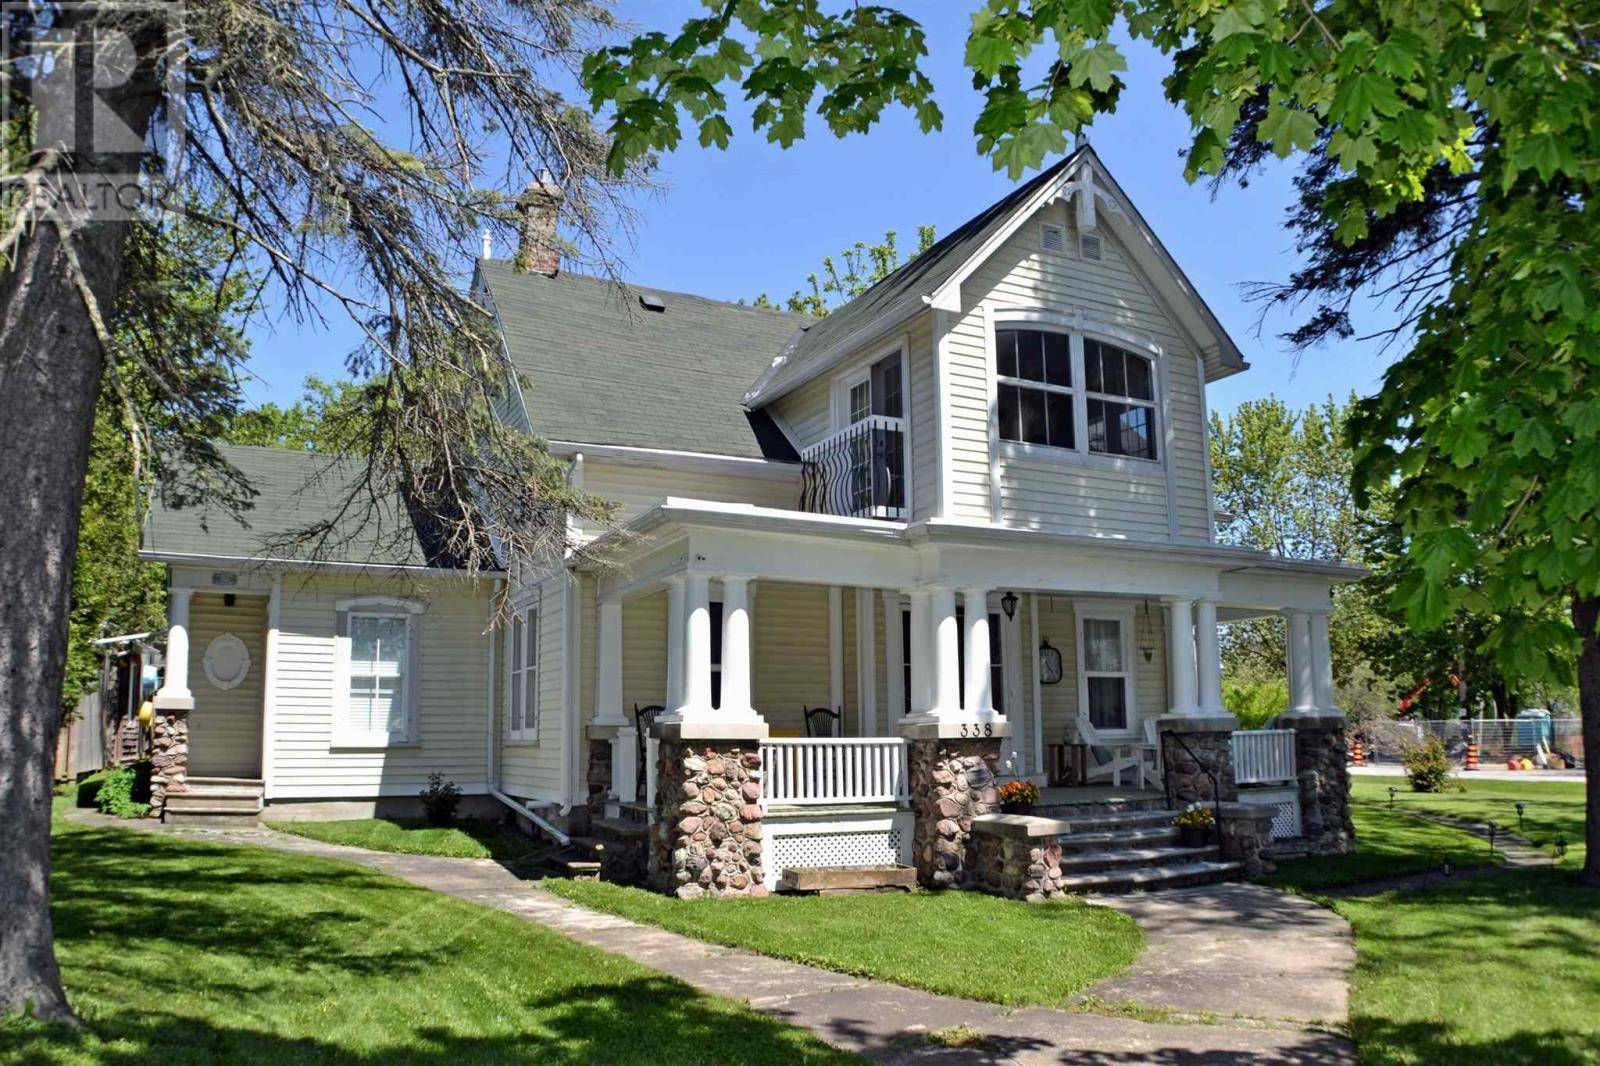 House for sale at 338 Main St Bath Ontario - MLS: K19004671